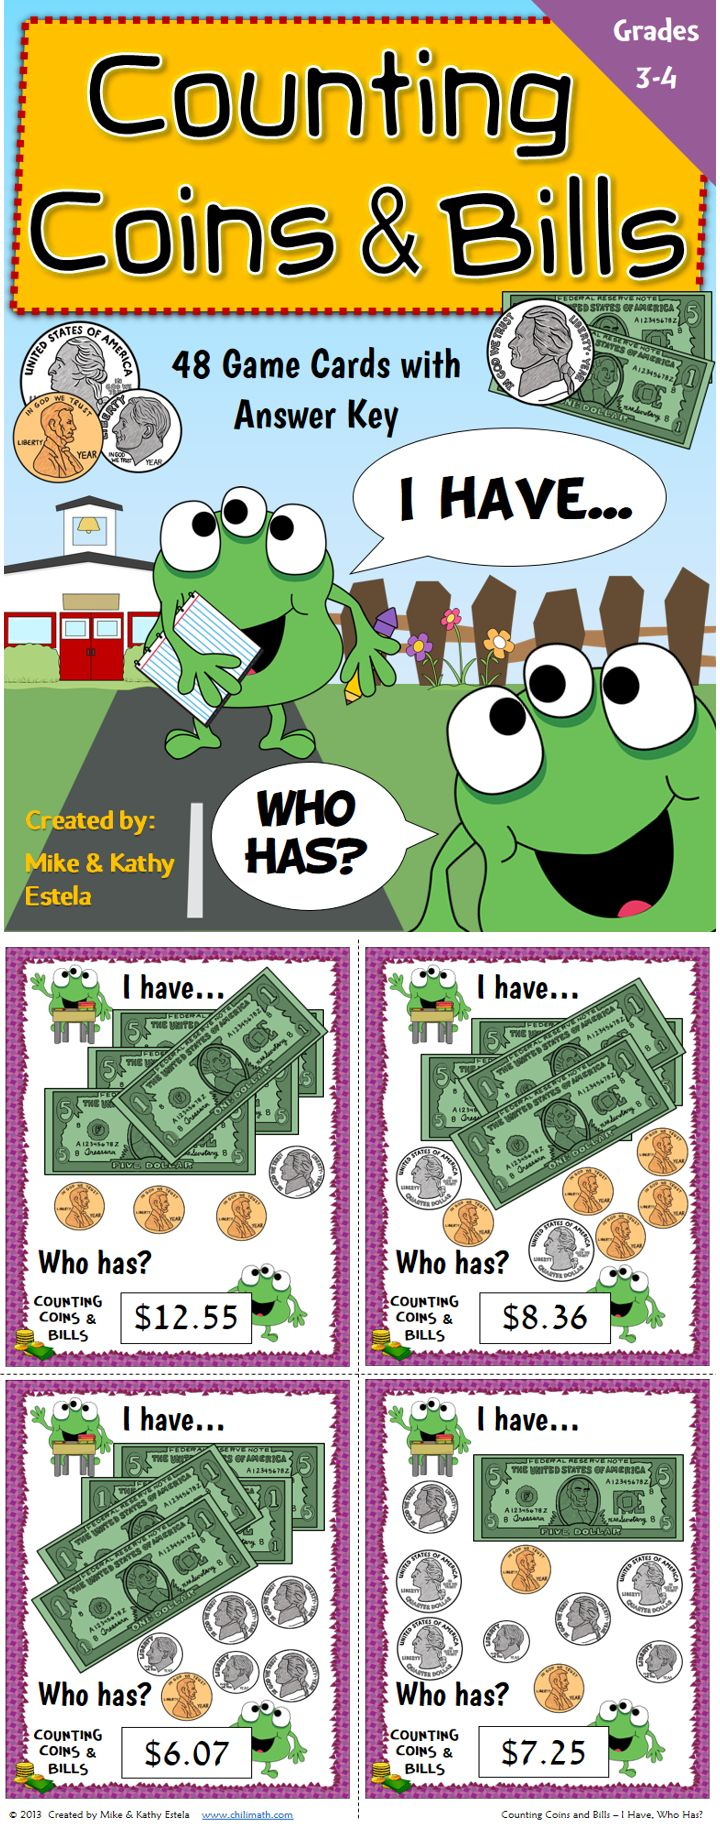 worksheet Counting Bills 25 best money images on pinterest counting coins teaching ideas this game provides a great opportunity to engage the whole class in learning how count and bills correctly set co